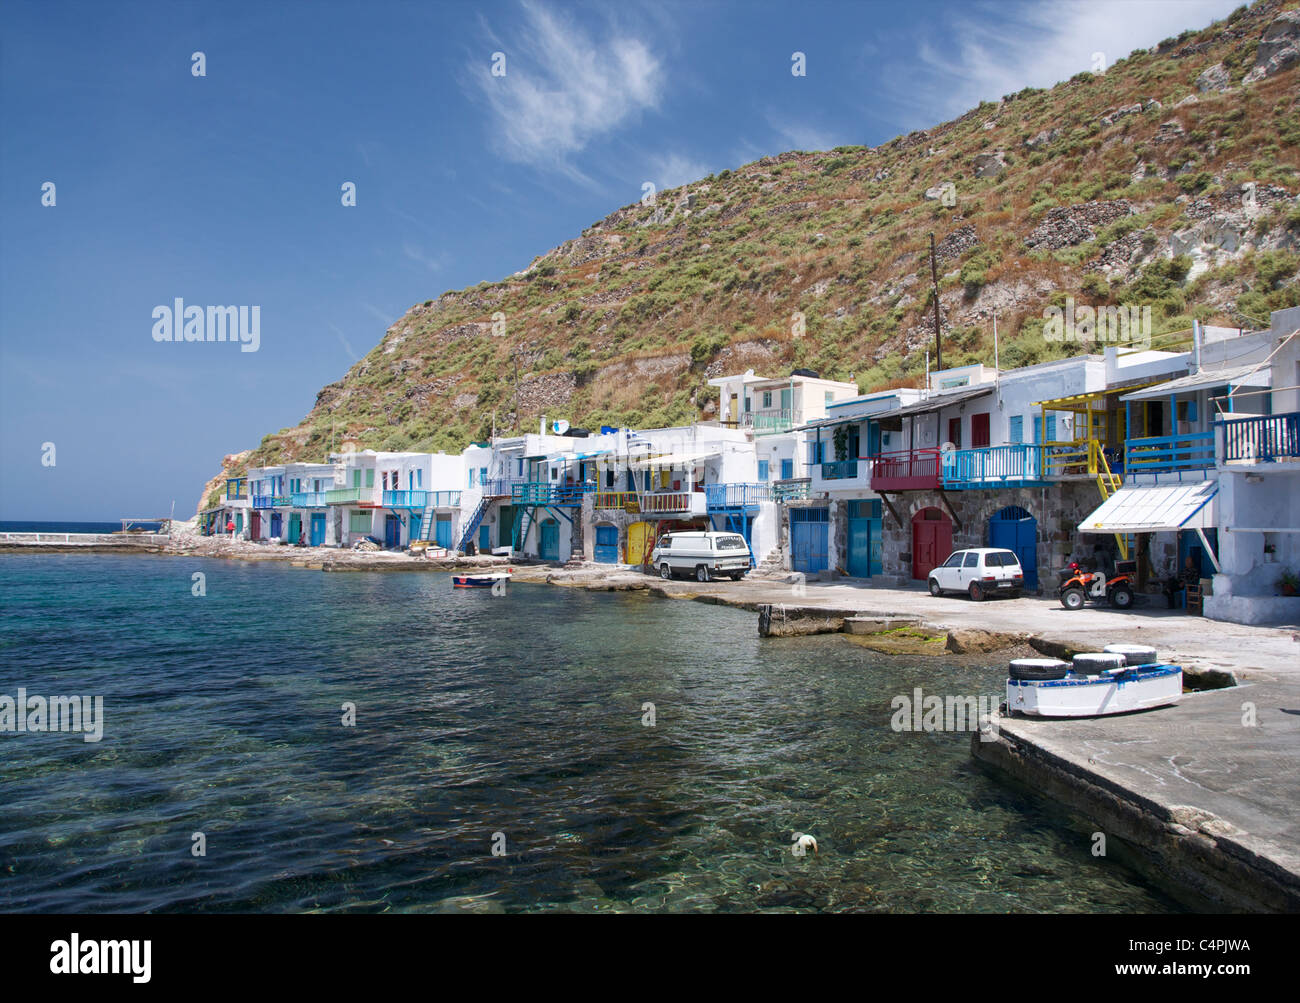 colorful fishermen's houses in Klima on the Cycladic Island of Milos in Greece Stock Photo